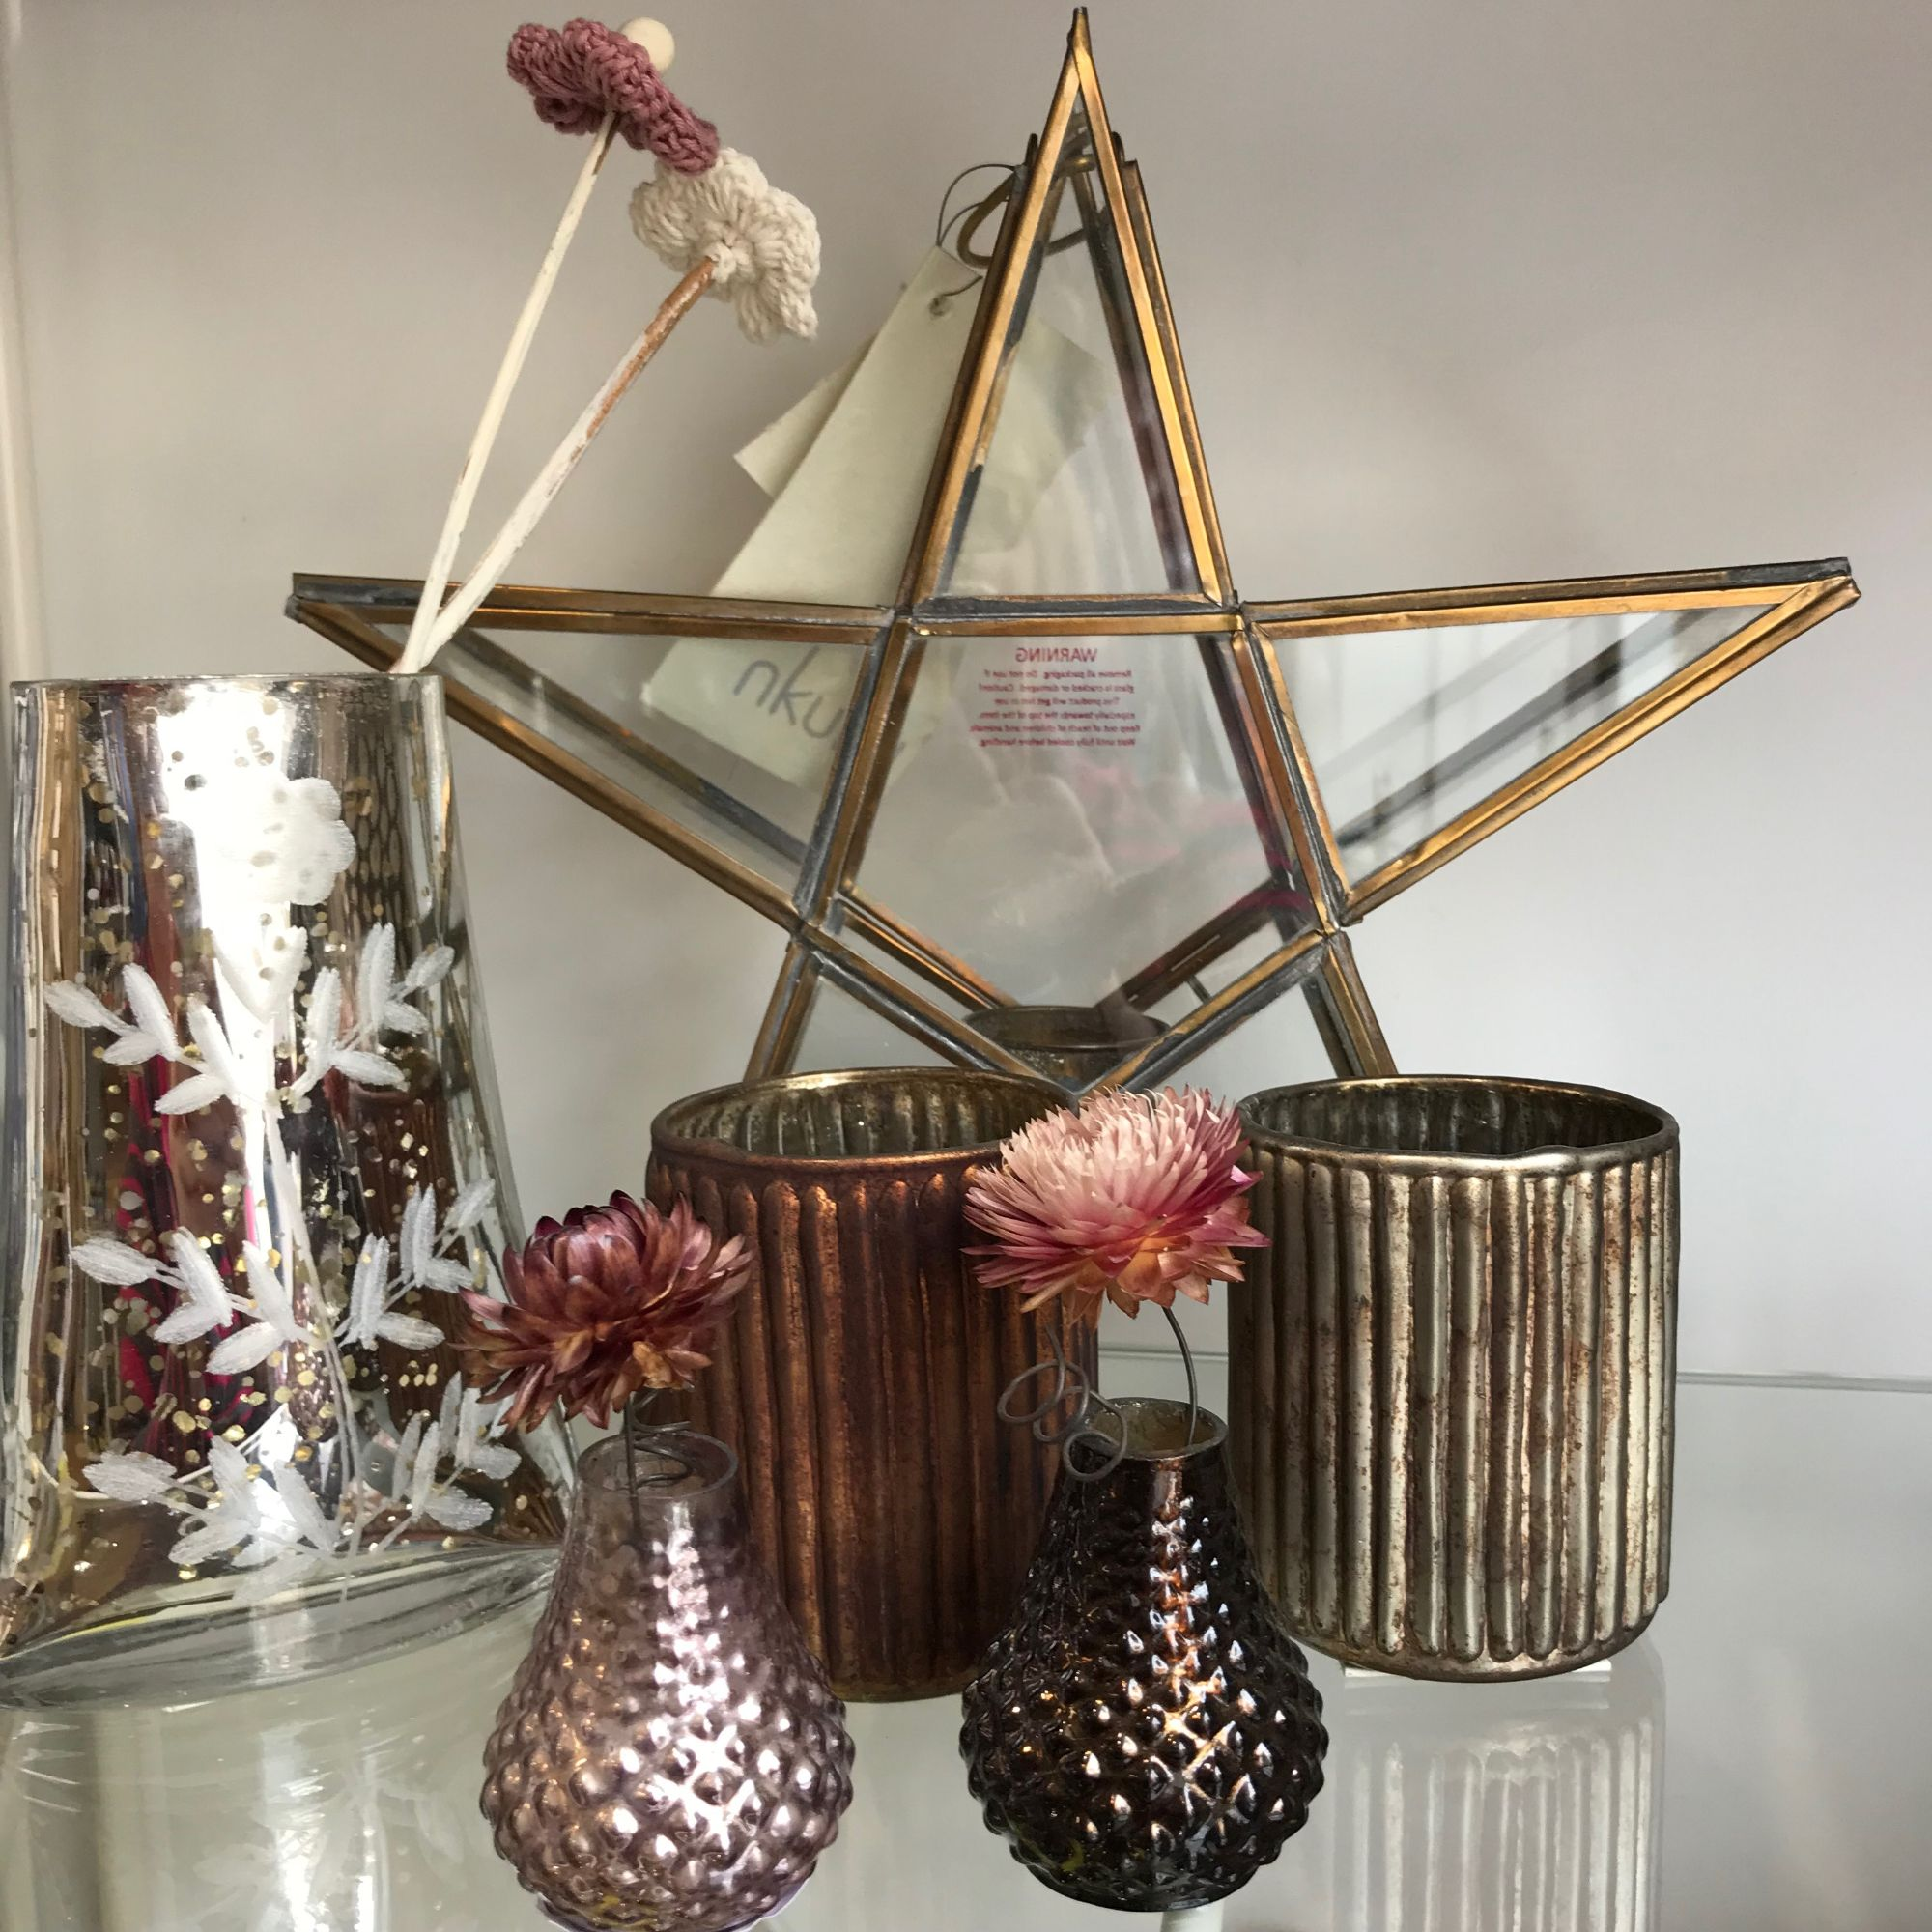 Beautiful Nkuku glass vases, stars and more